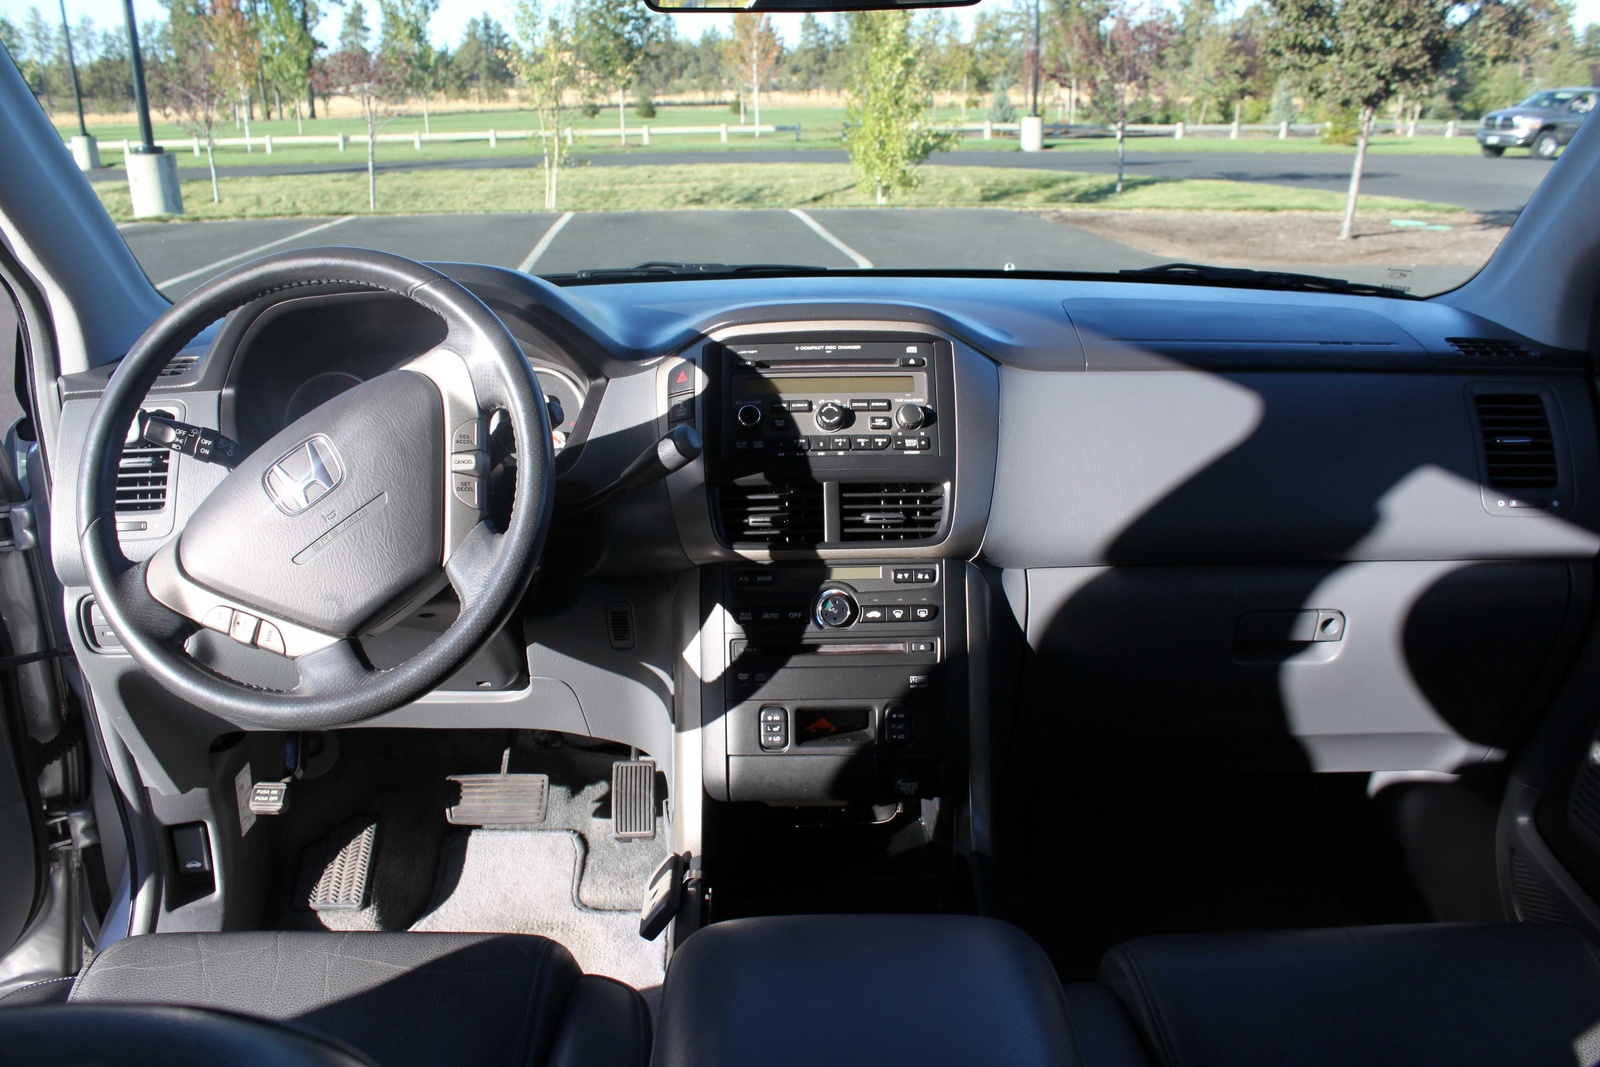 2006 honda pilot interior pictures cargurus. Black Bedroom Furniture Sets. Home Design Ideas